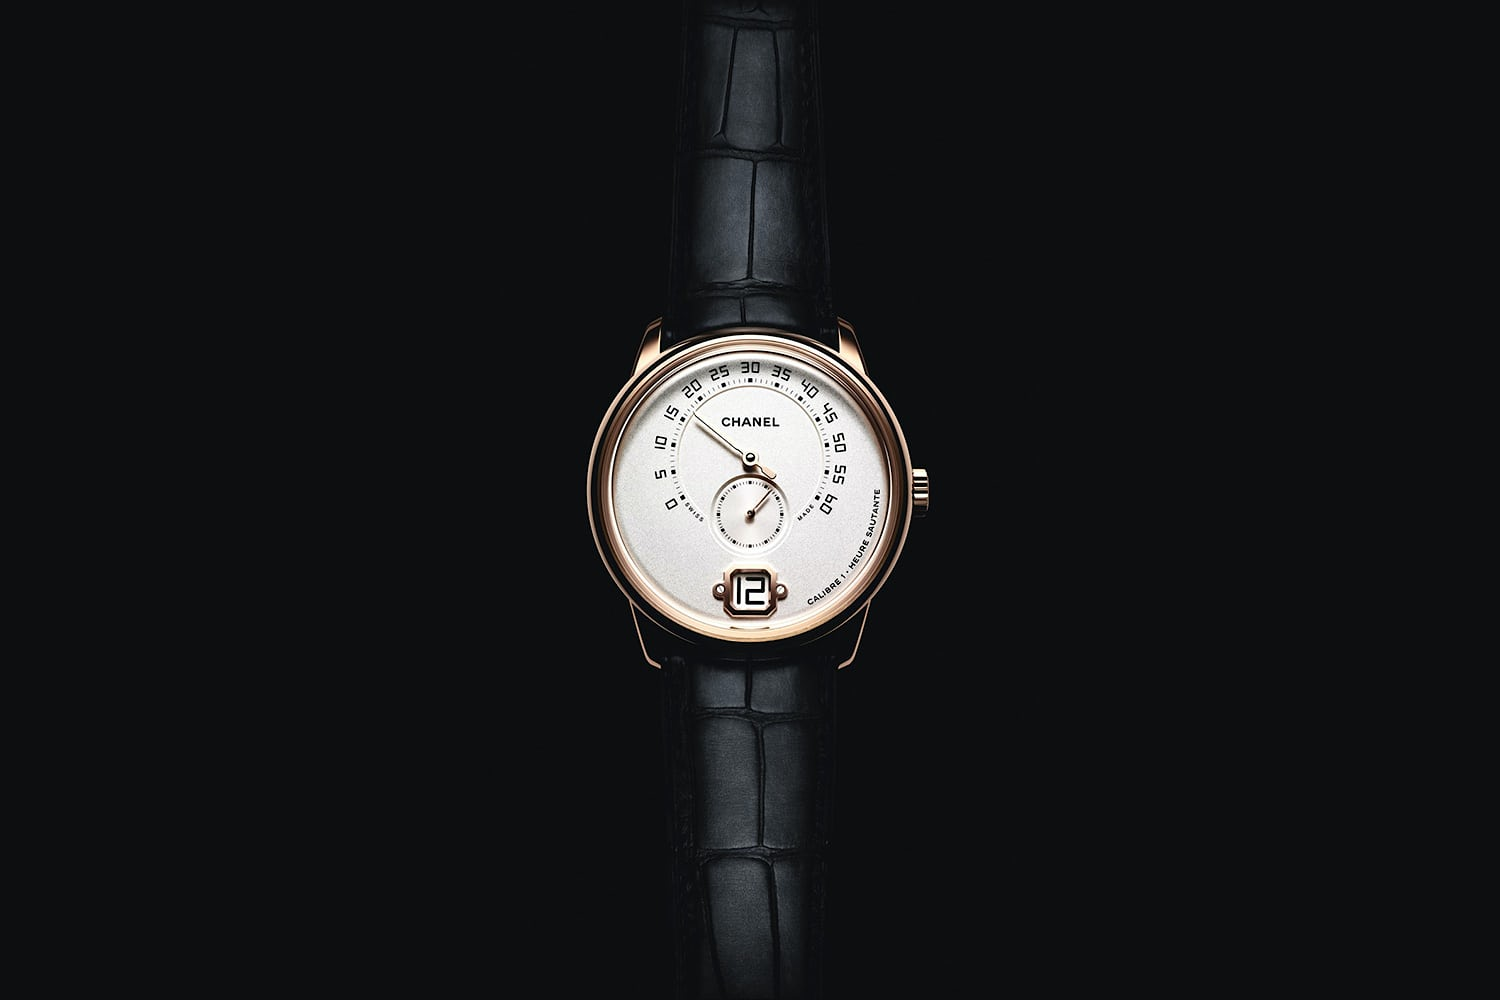 d7e803d2e8defa Introducing: The Monsieur de Chanel: Chanel's First Dedicated Men's Watch,  And It's Completely In-House And VERY Impressive - HODINKEE